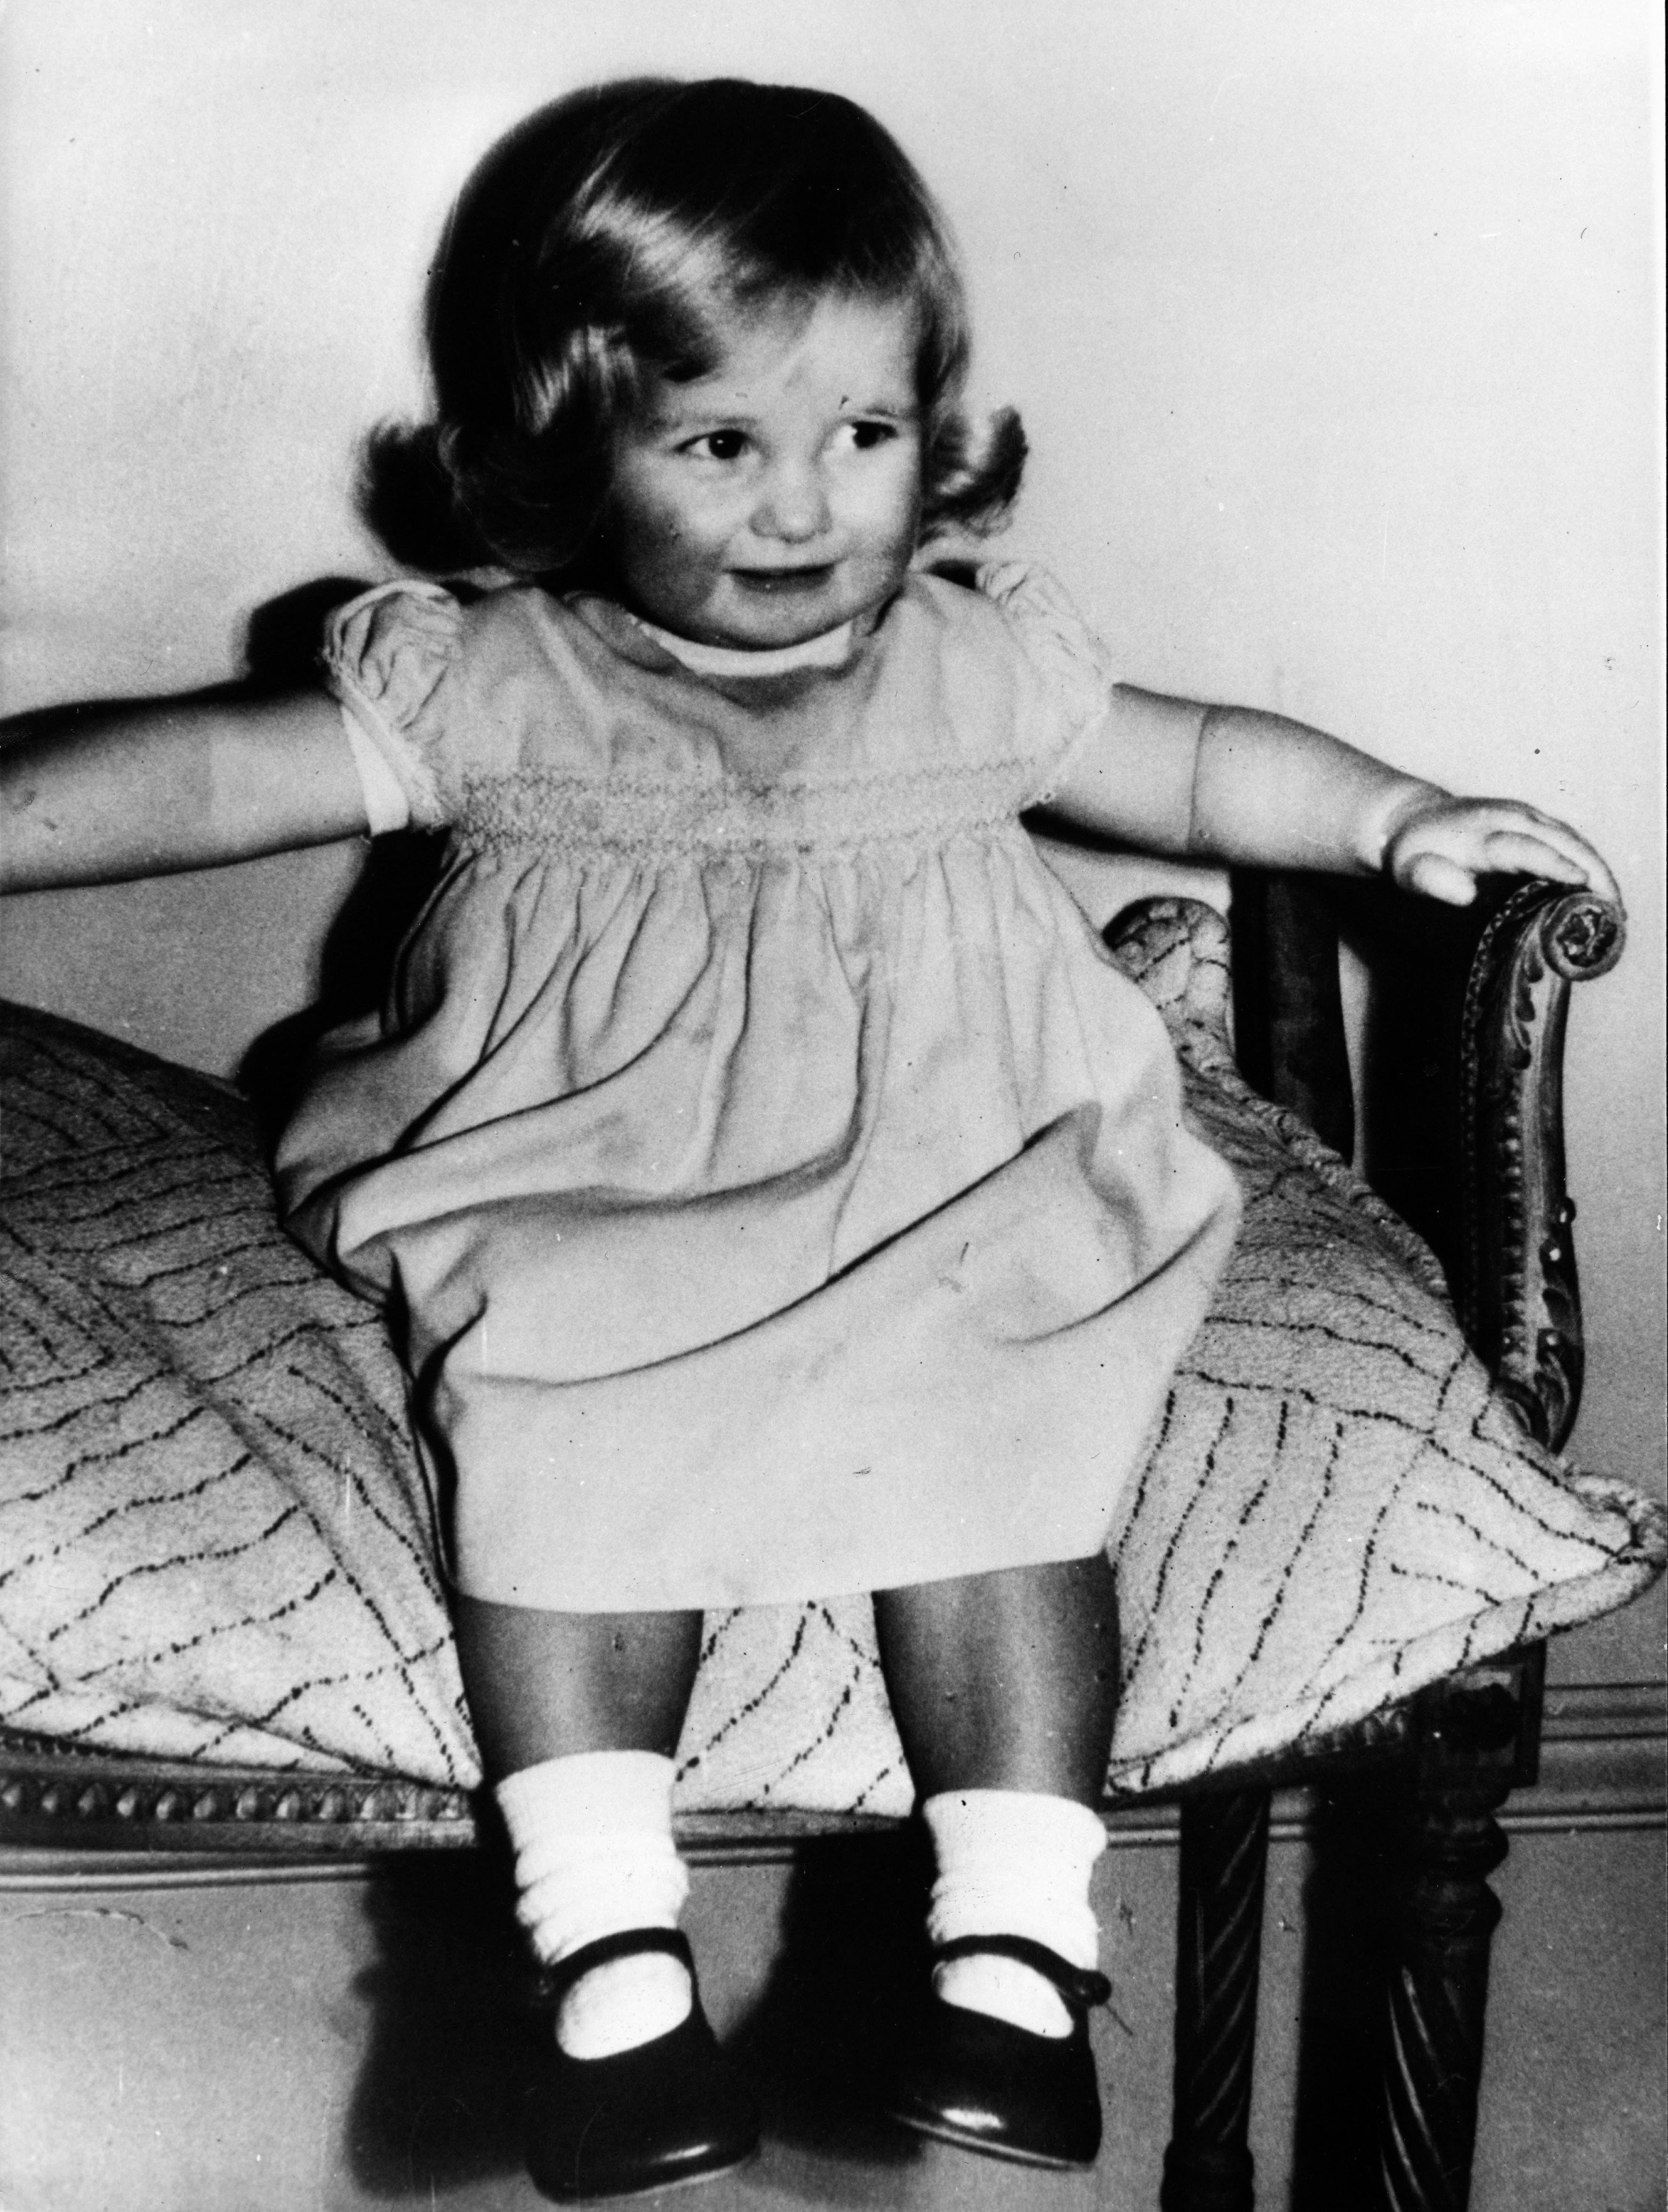 June 30, 1981 - London, England, U.K. - PRINCESS DIANA at two years of age when she was still LADY DIANA SPENCER. Photo released to the public, June 30, 1981., Image: 210127604, License: Rights-managed, Restrictions: , Model Release: no, Credit line: Profimedia, Zuma Press - Archives